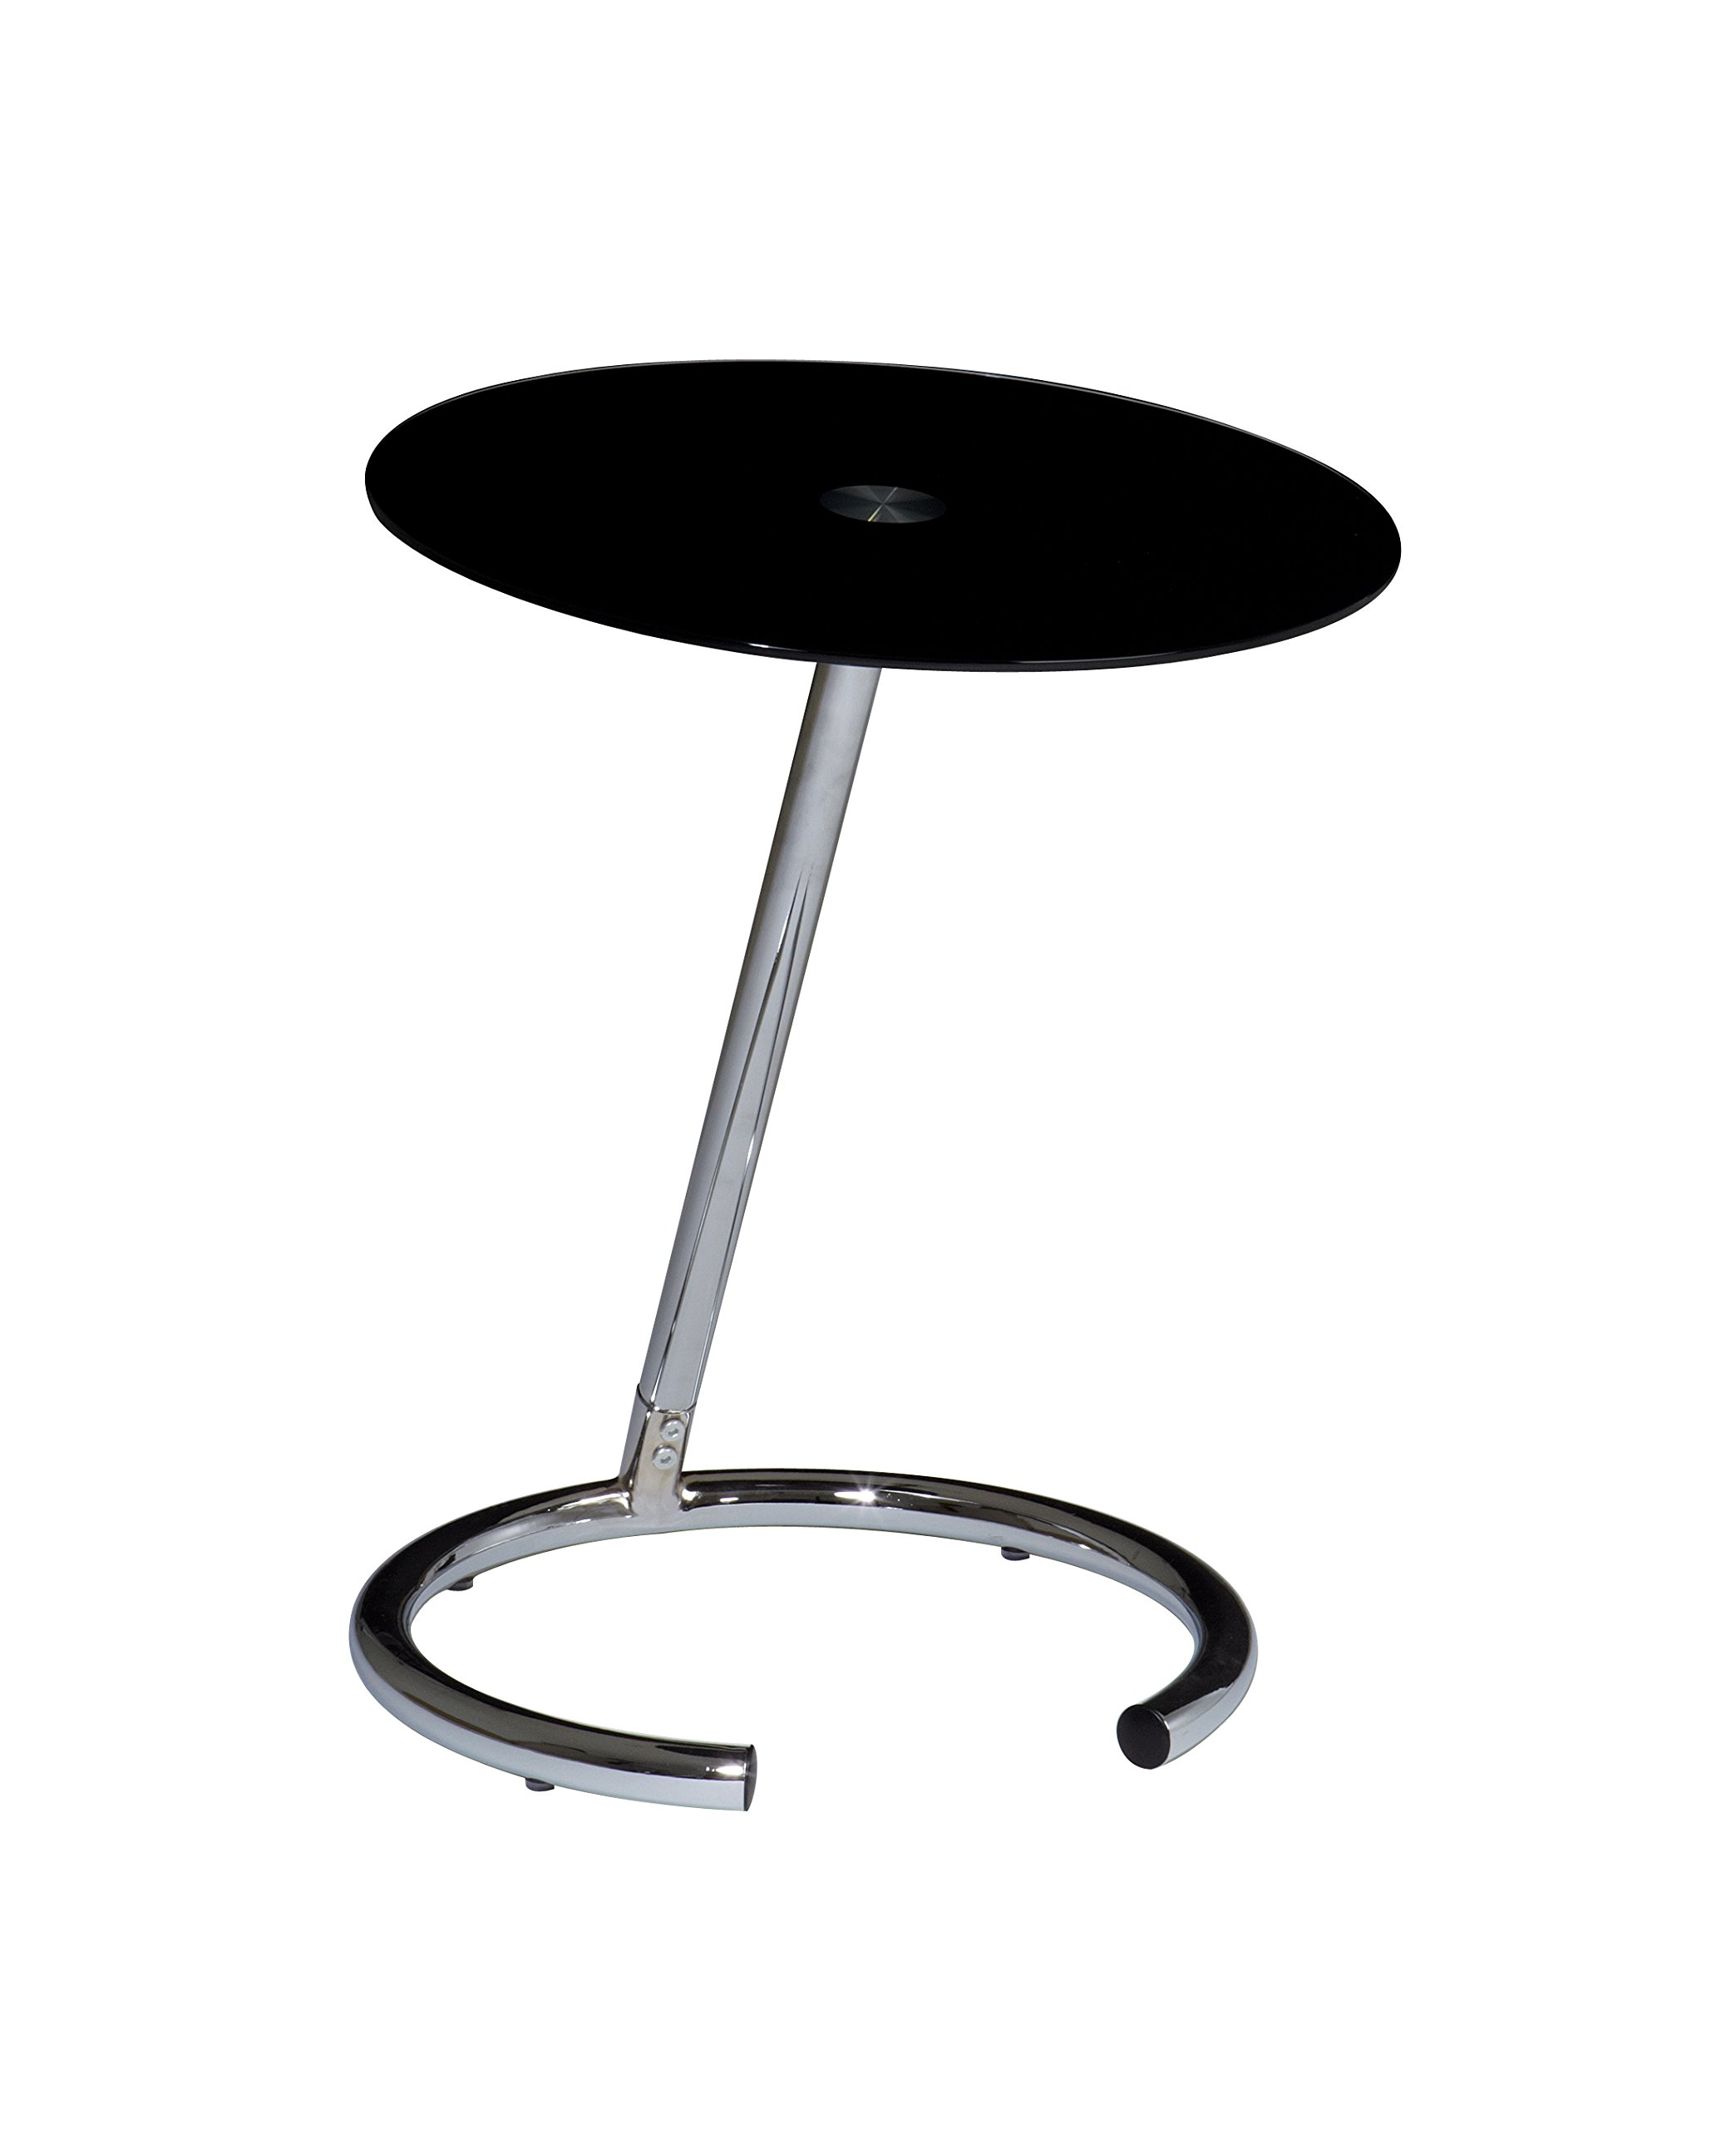 AVE SIX Yield Modern Telephone Table with Chromed Steel Base, Black Glass Top